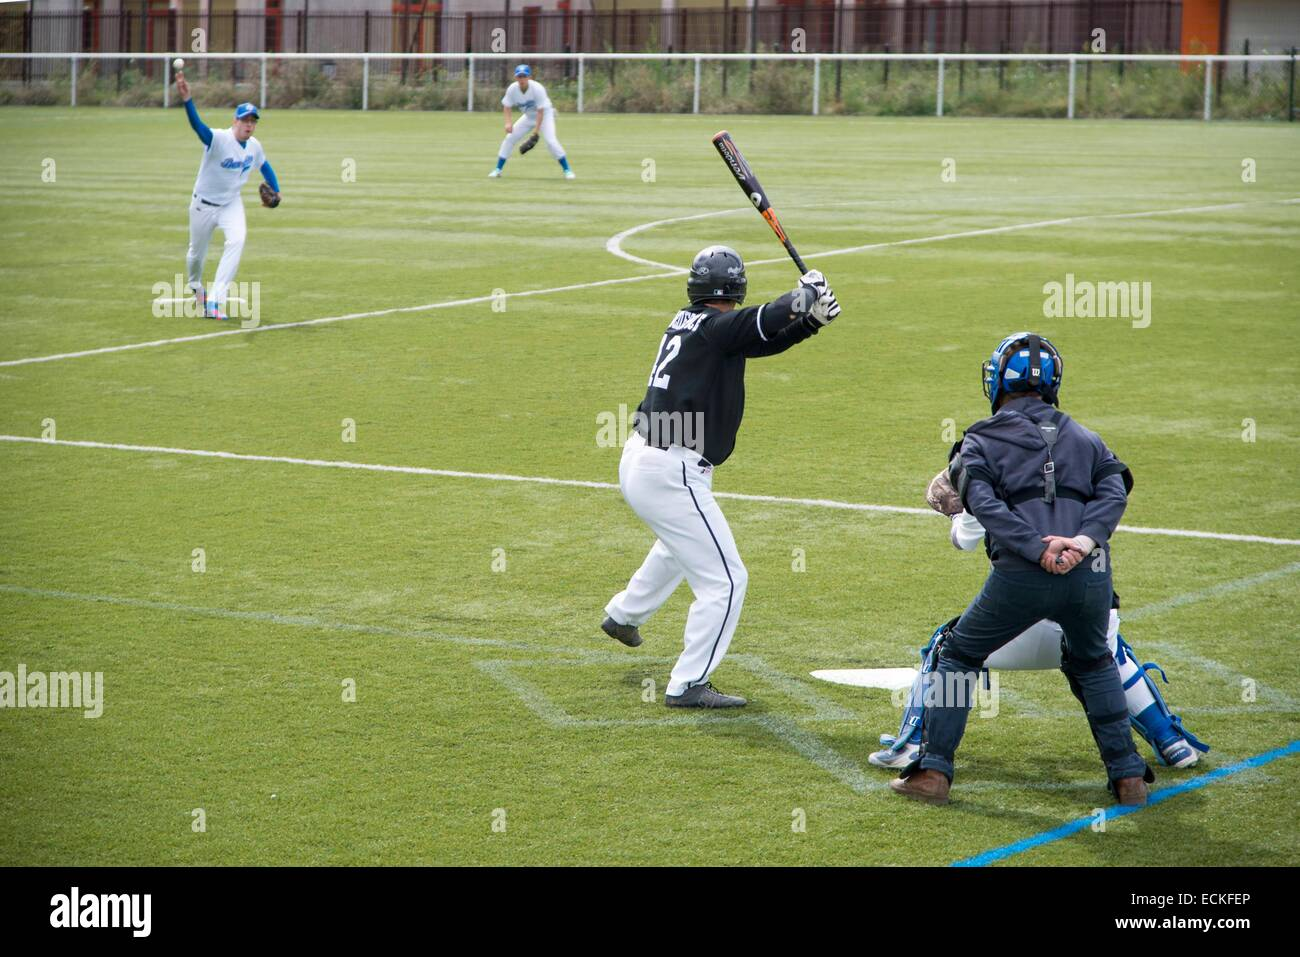 France, Seine Saint Denis, Tremblay en France, Tremblay en France, match de baseball Photo Stock